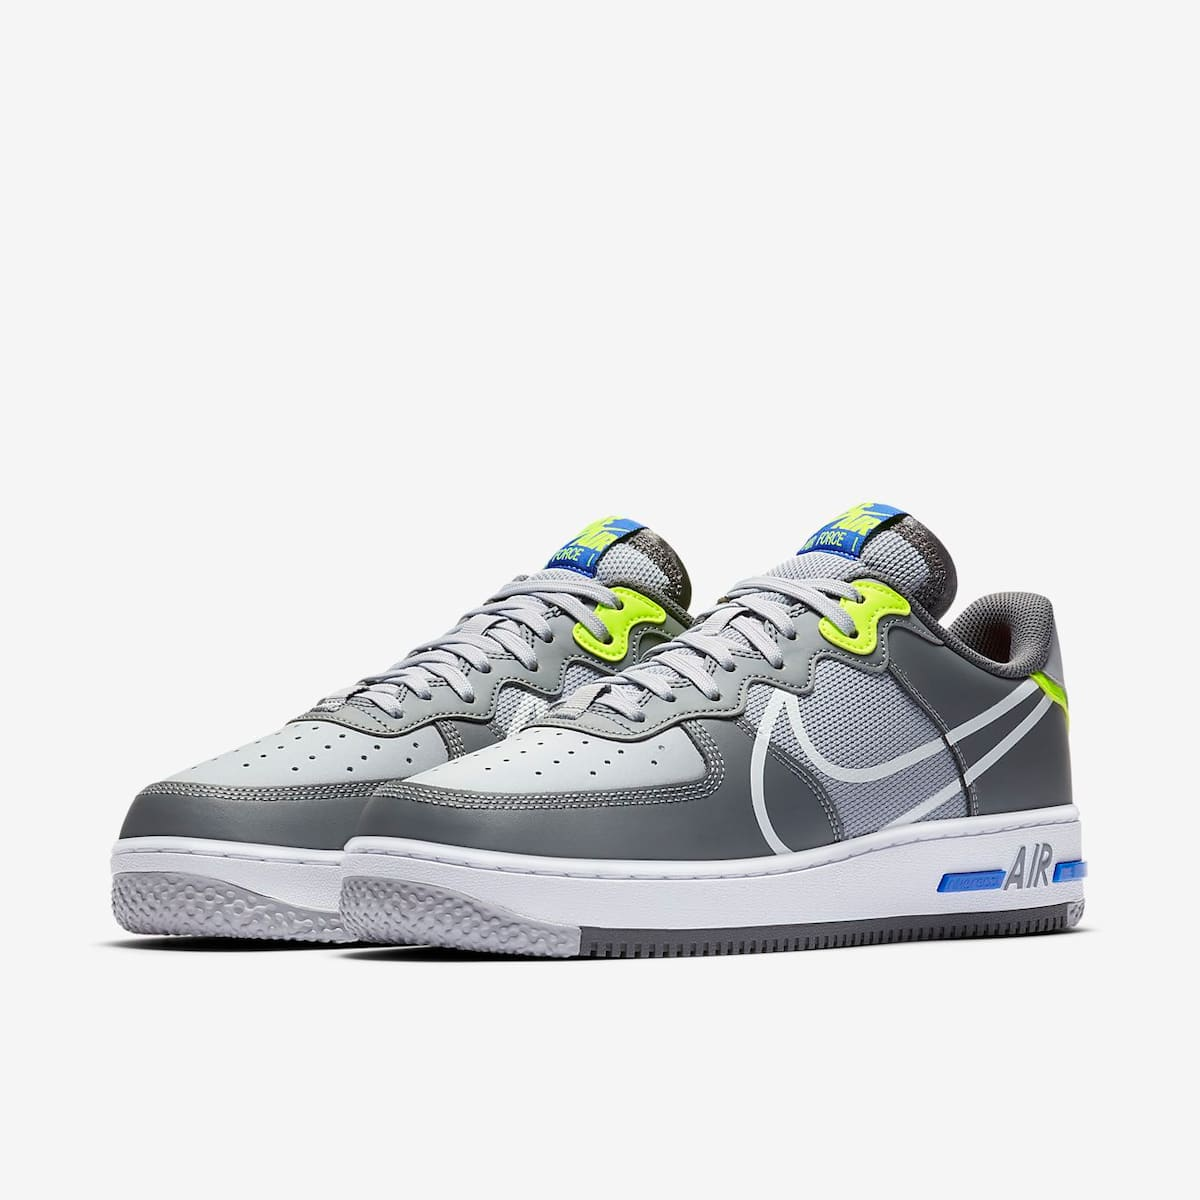 The best Air Force 1 sneakers that are